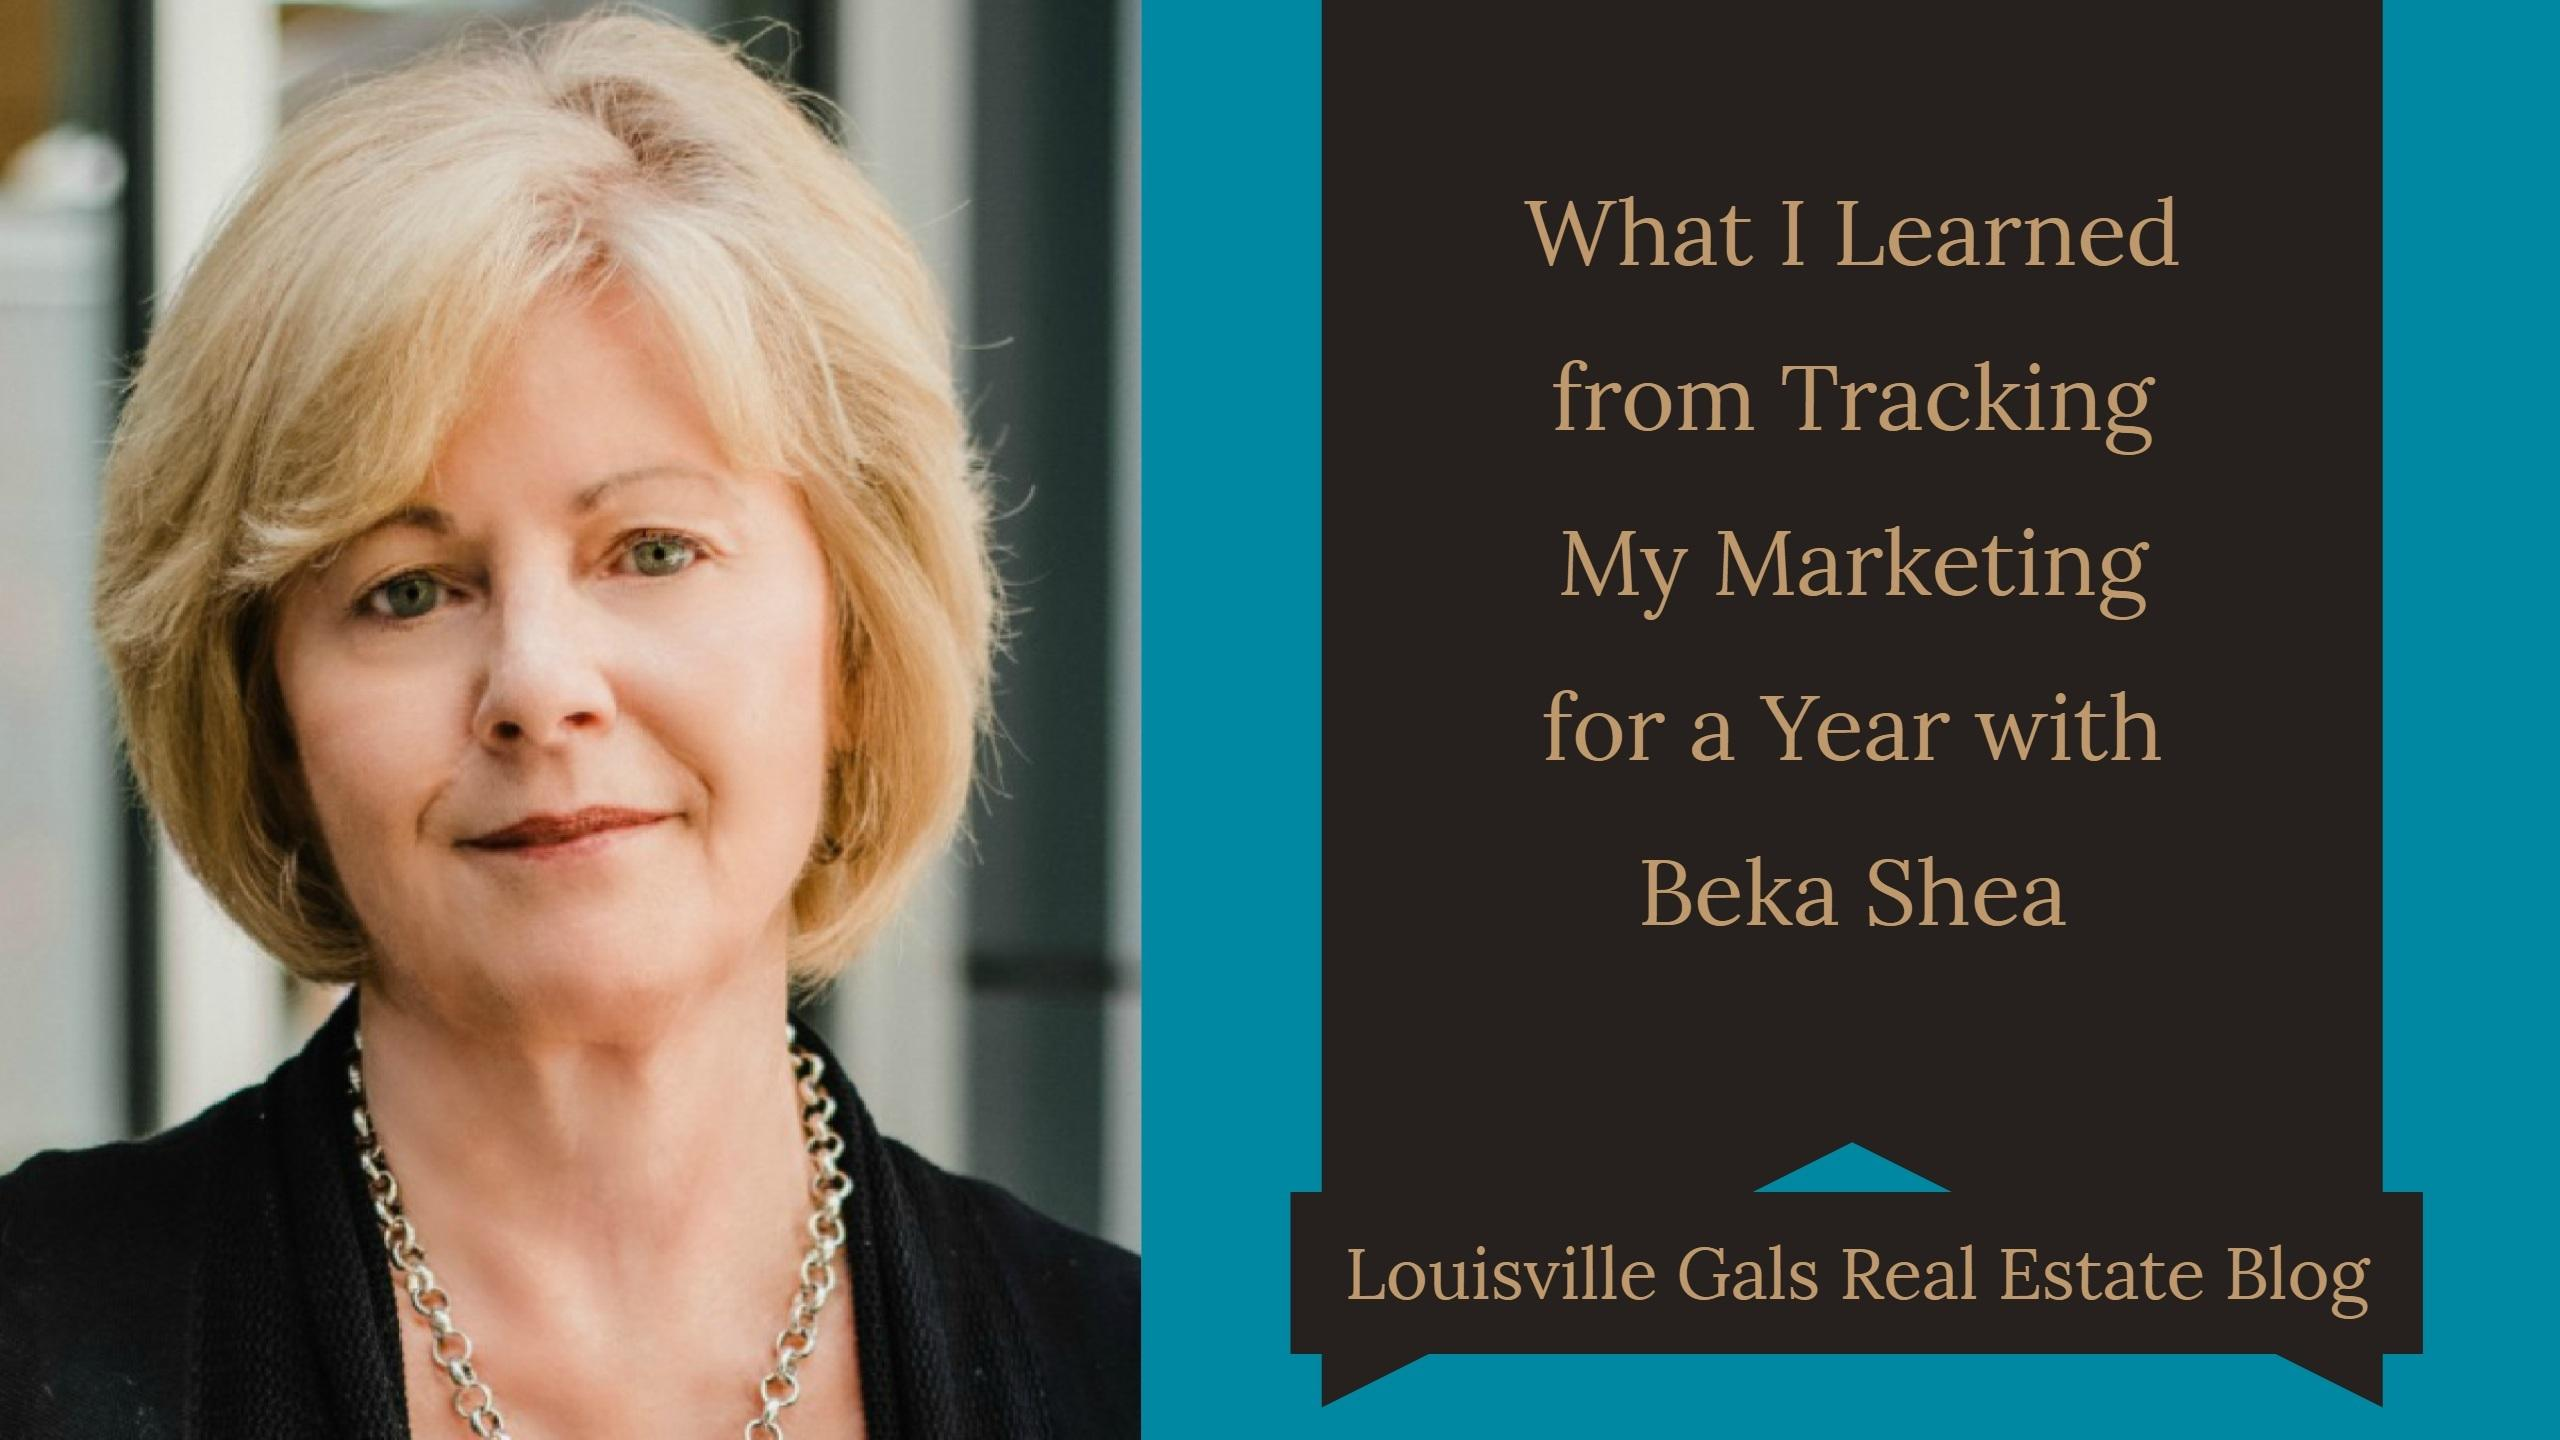 What I Learned from Tracking My Marketing in 2017 with Beka Shea (and what I plan to change) - Podcast #118